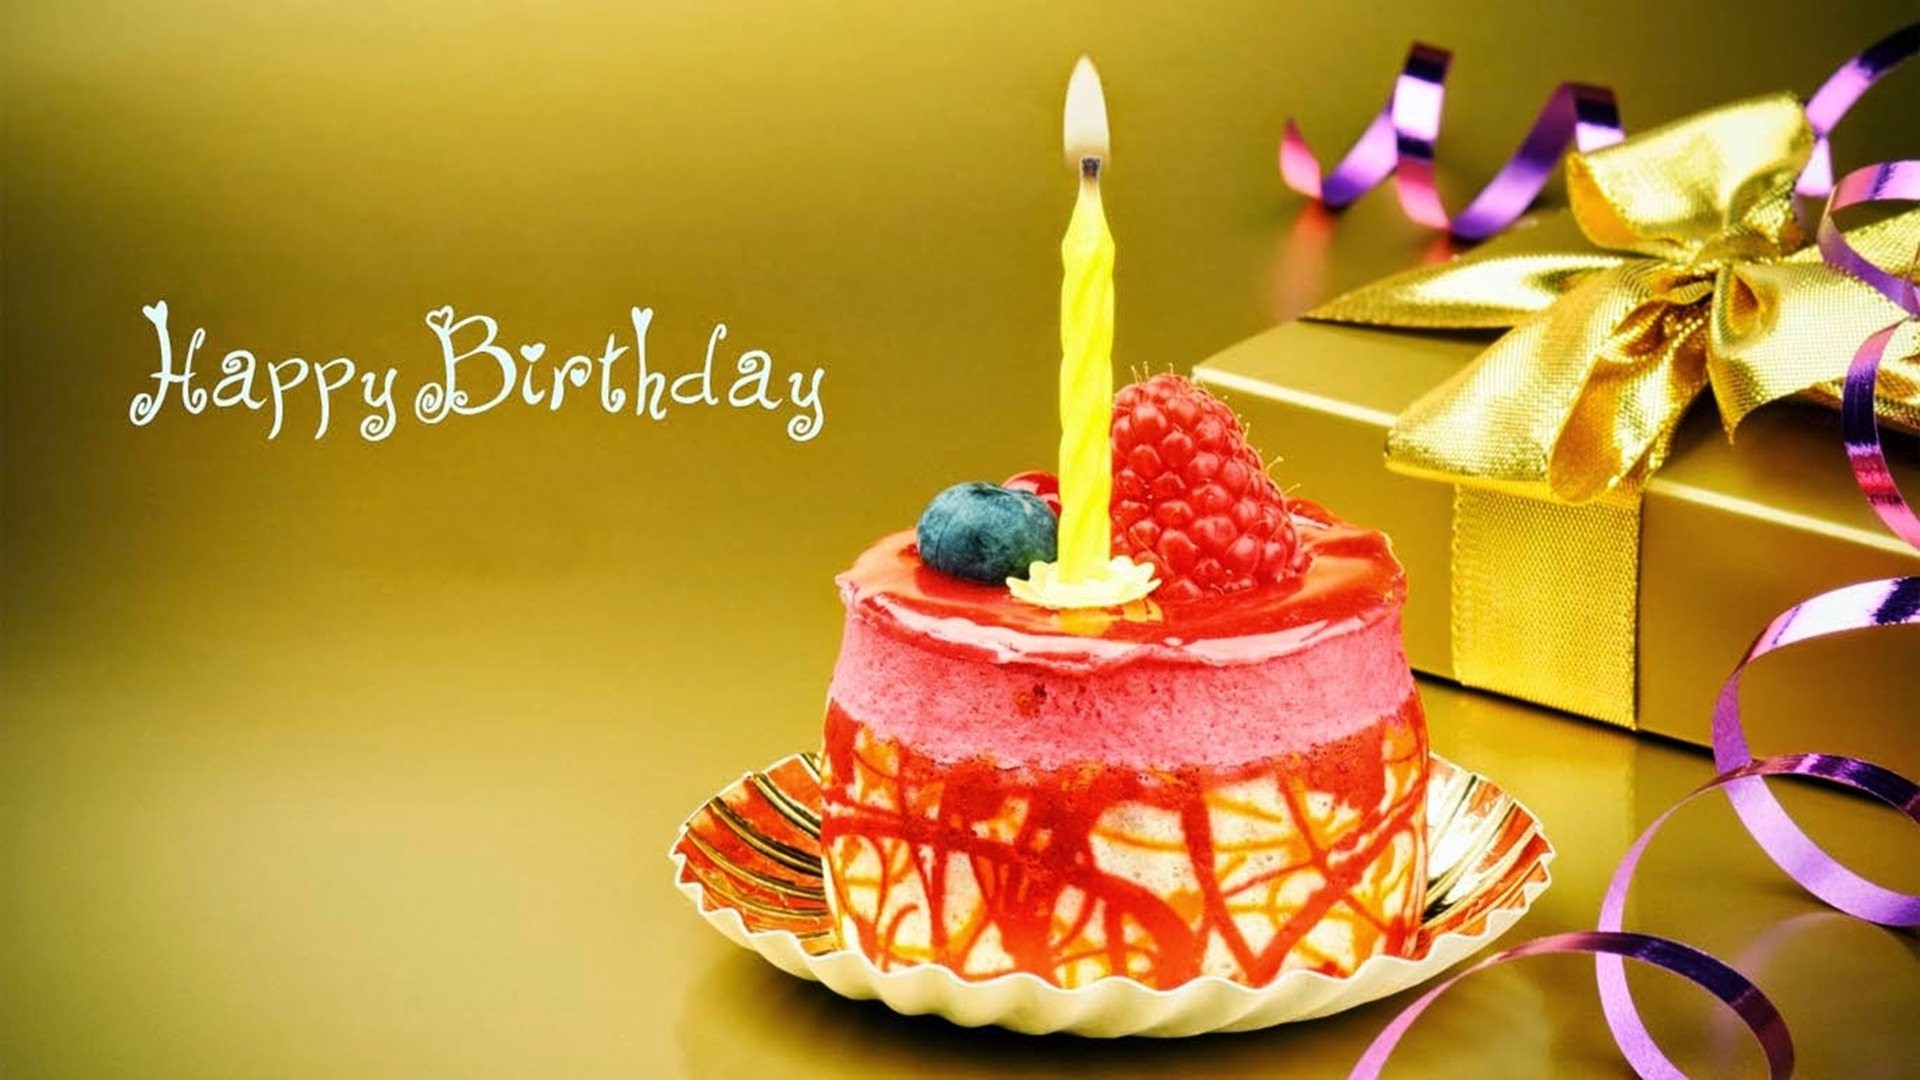 Wallpapers Of Happy Birthday 60 Background Pictures